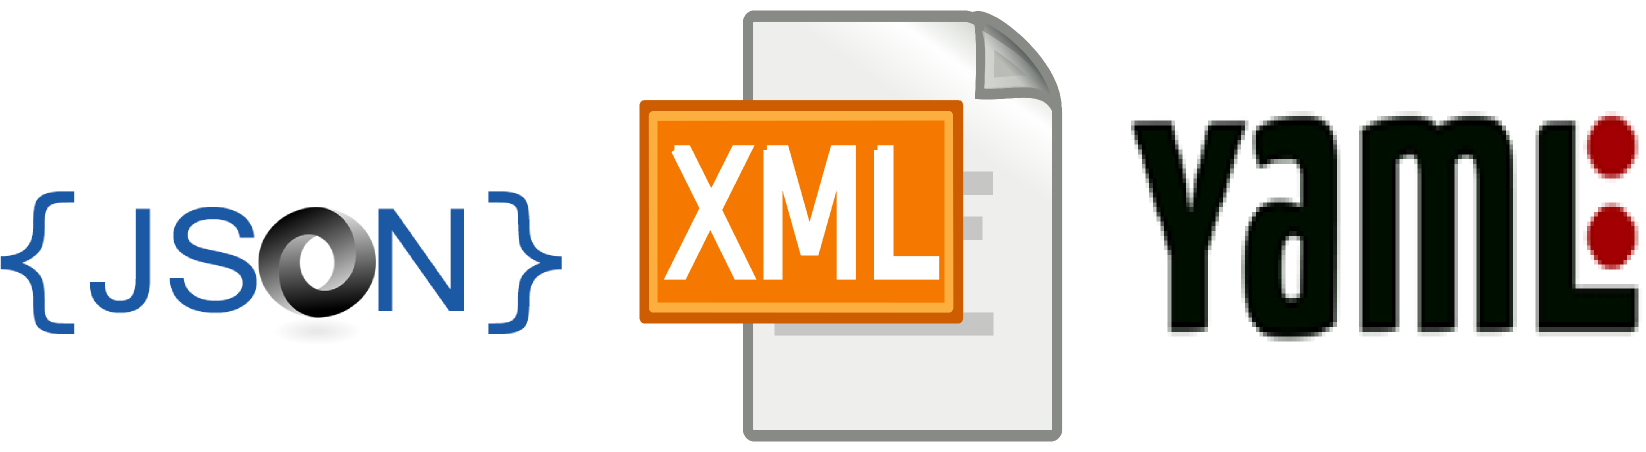 XML vs YAML vs JSON